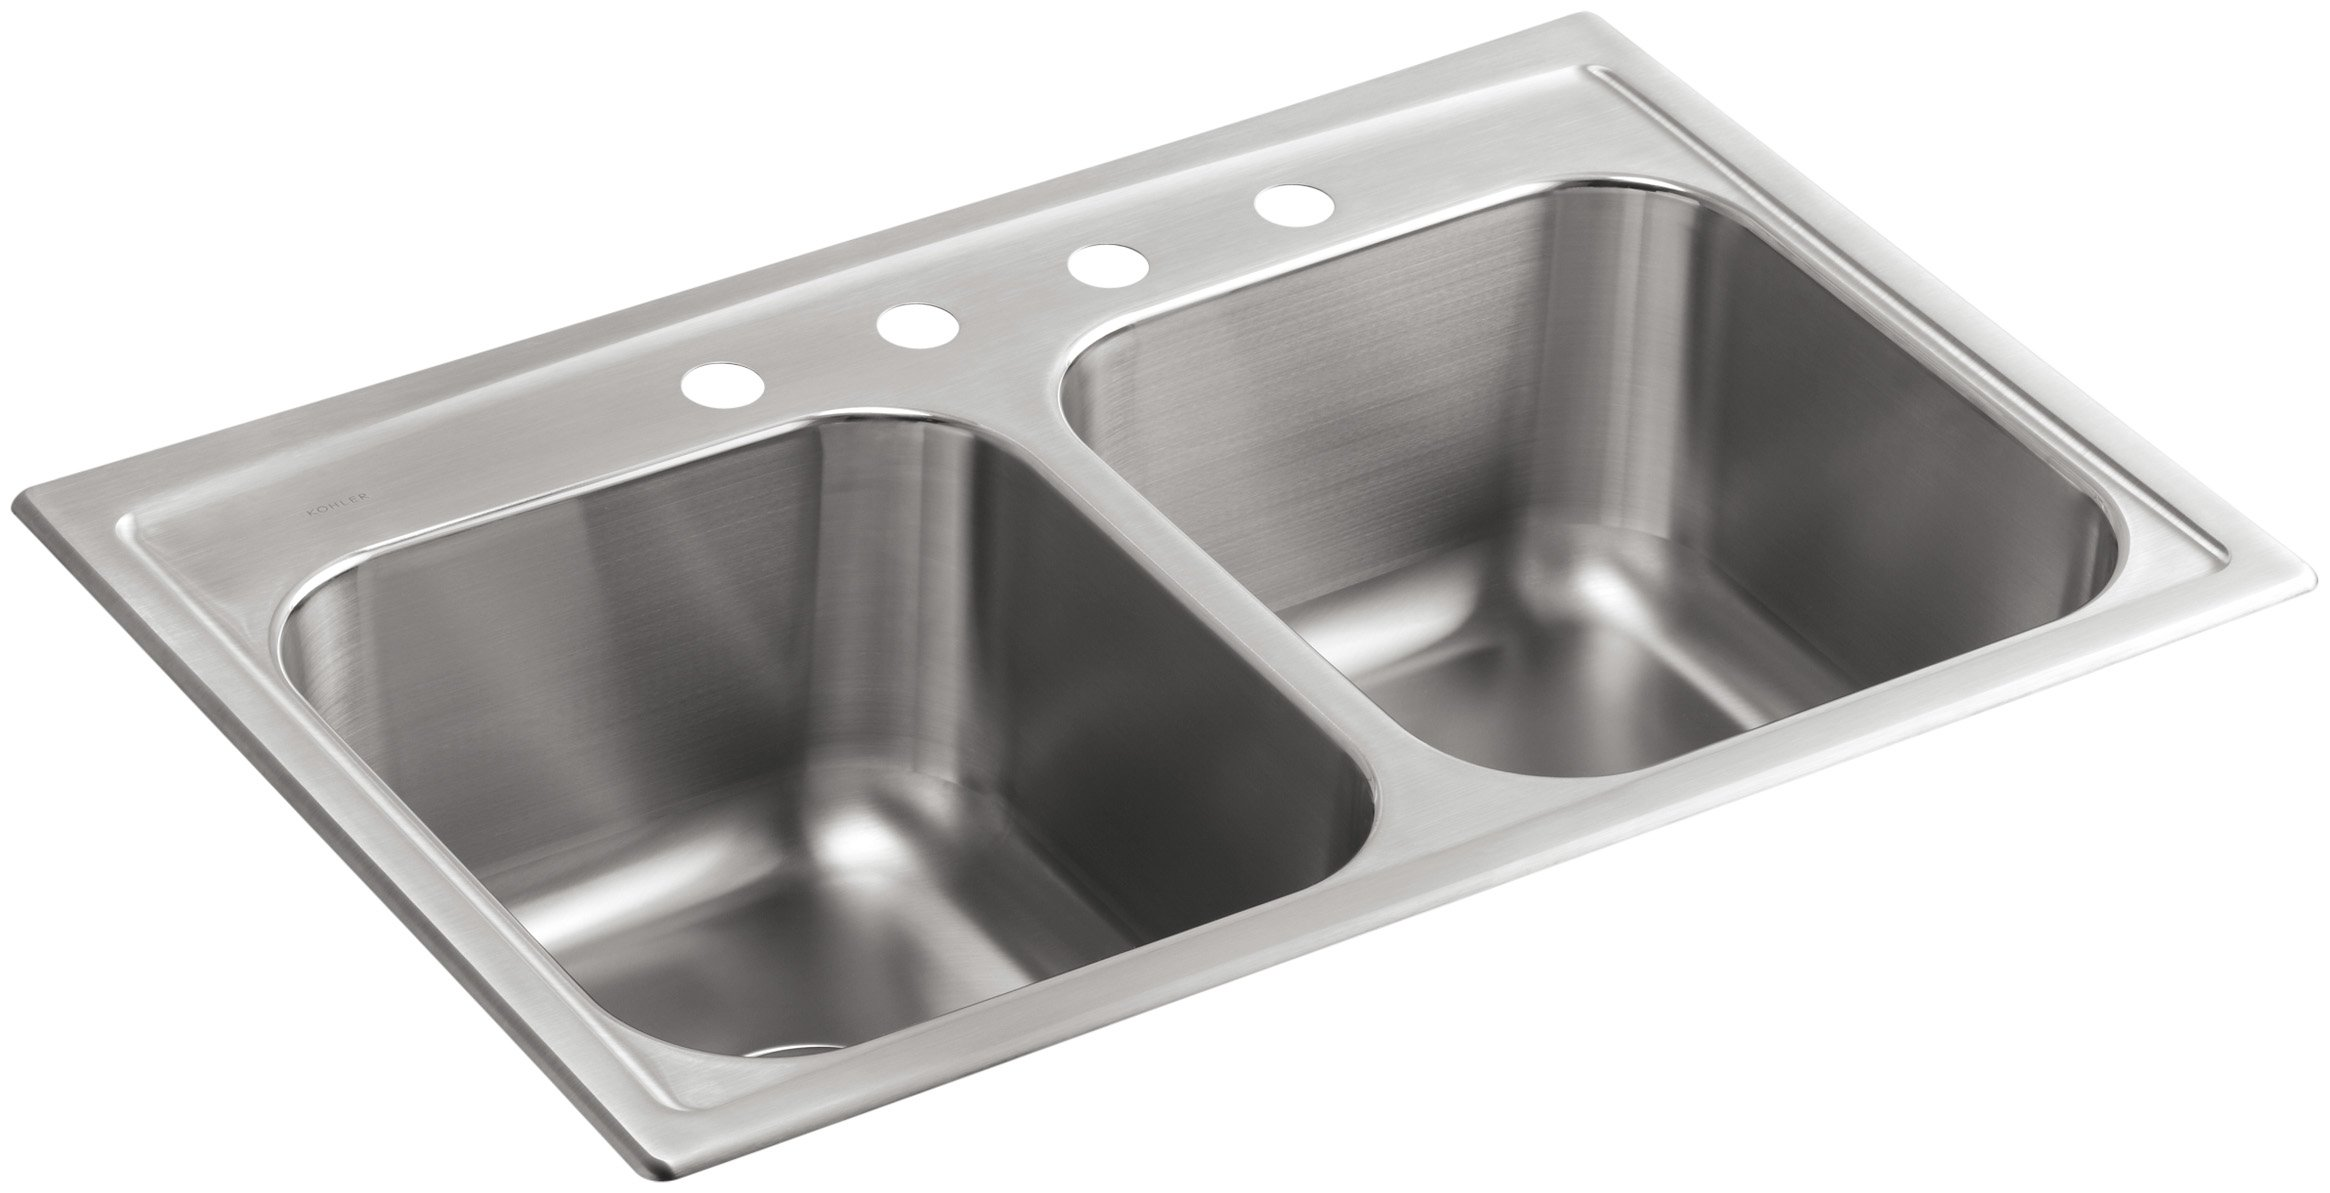 KOHLER K-3847-4-NA Toccata Top-Mount Double-Equal Bowl Kitchen Sink with 4 Faucet Holes, Stainless Steel